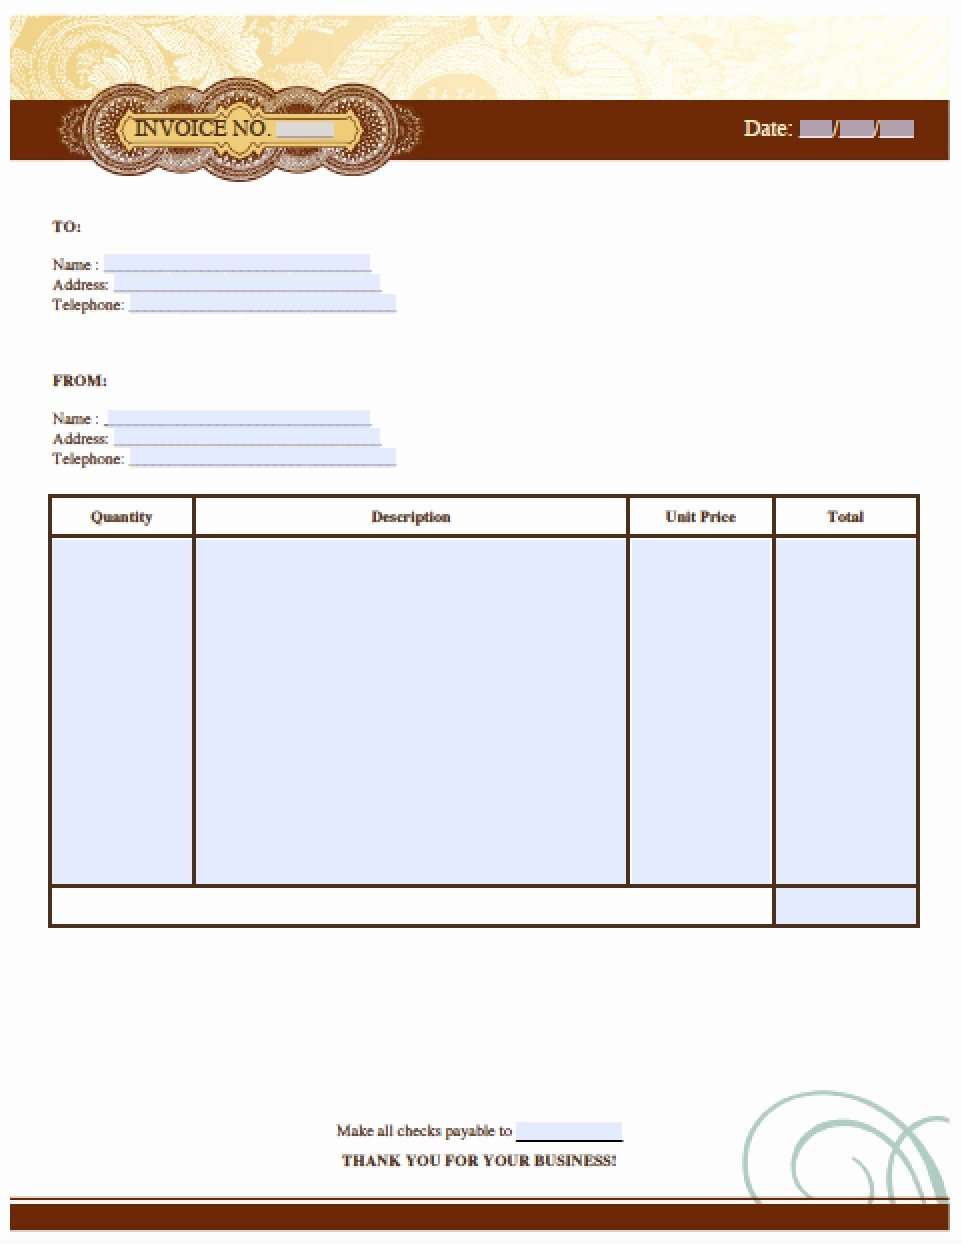 Makeup Artist Invoice Template Lovely Free Auto Body Repair Invoice Template Excel